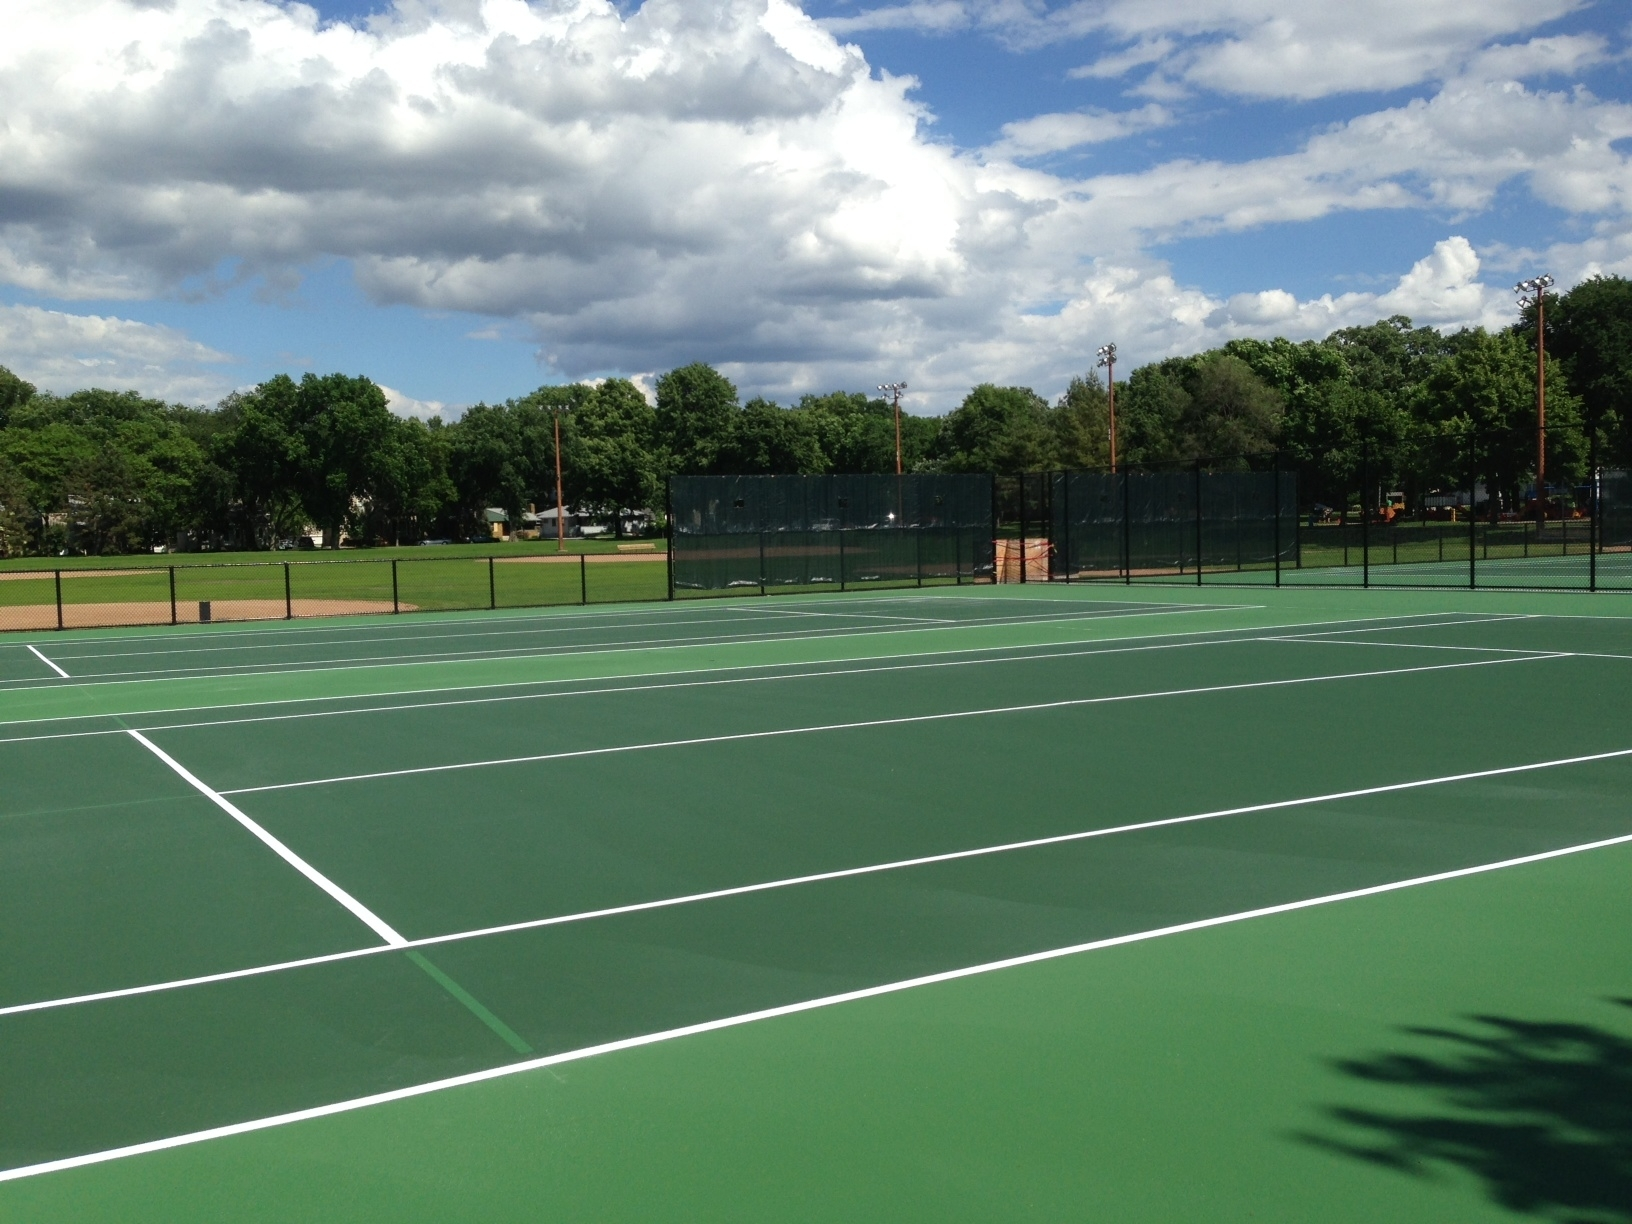 tennis courts at linden hills park